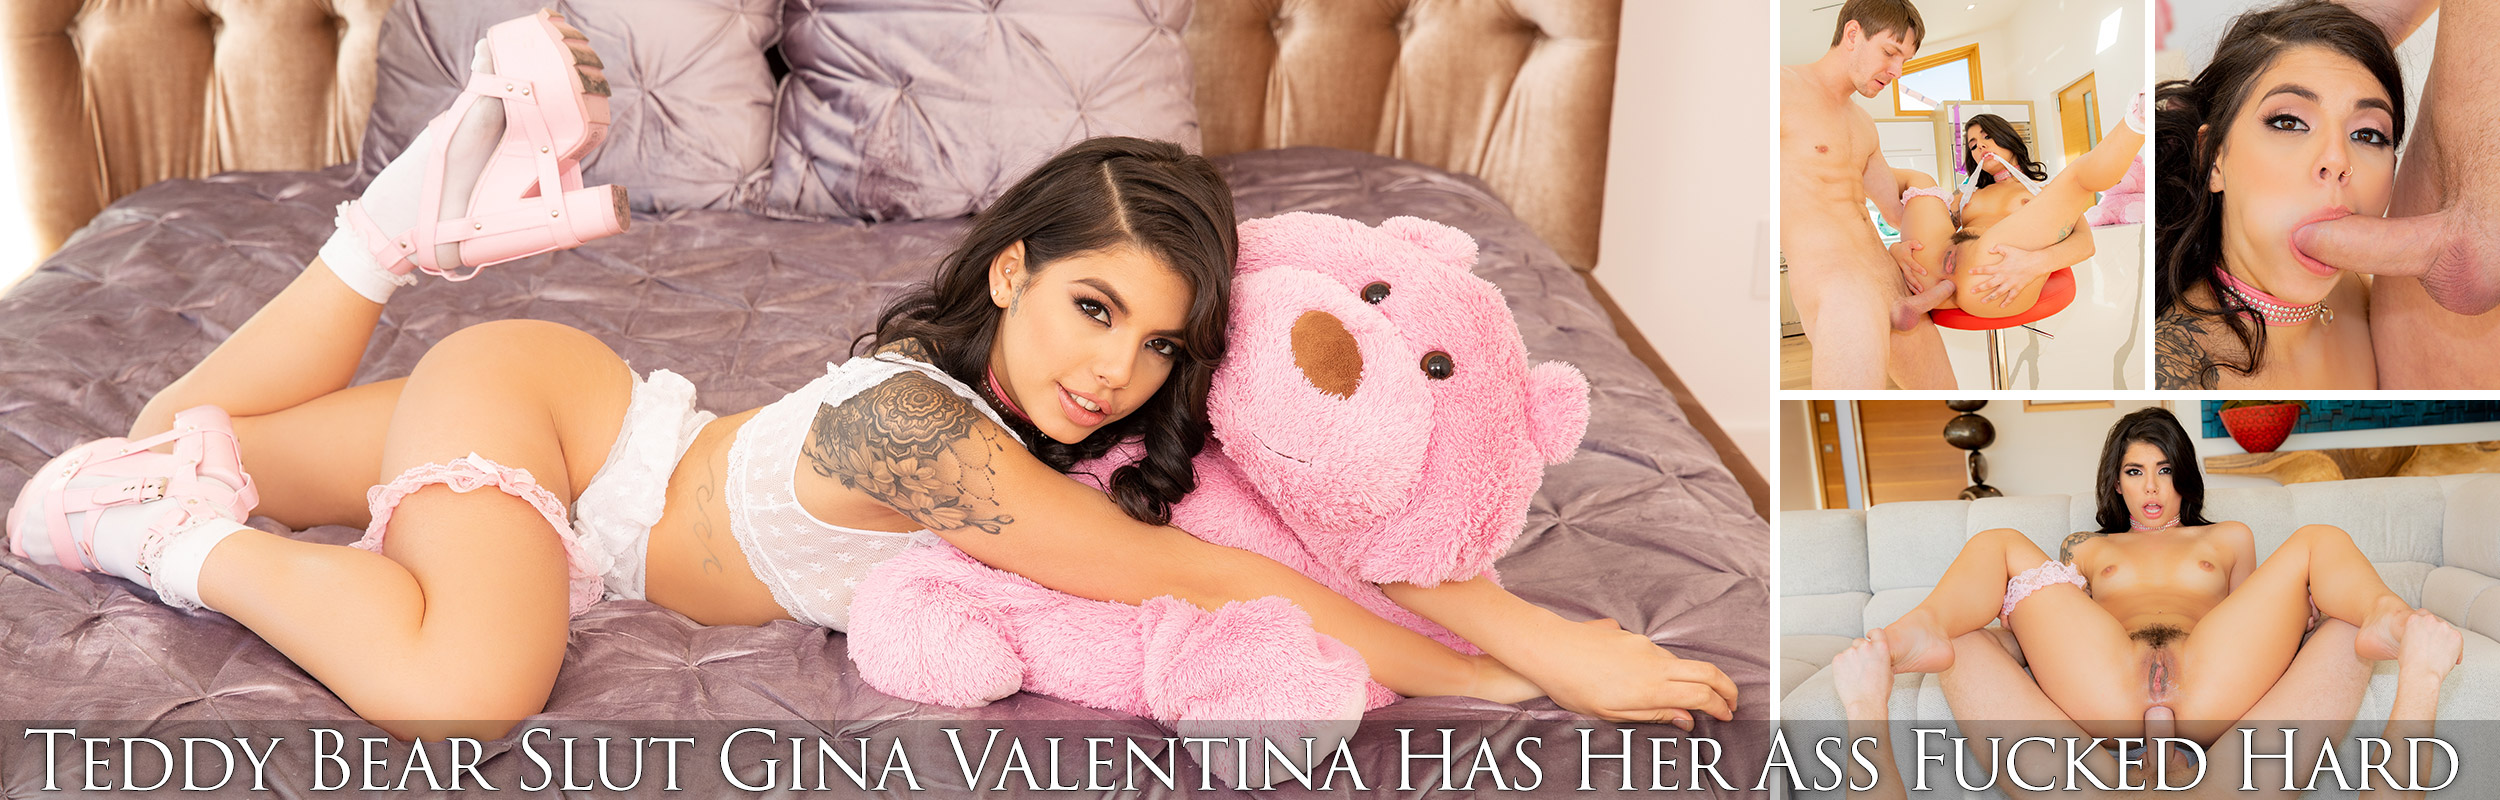 Teddy Bear Slut Gina Valentina Has Her Ass Fucked Hard